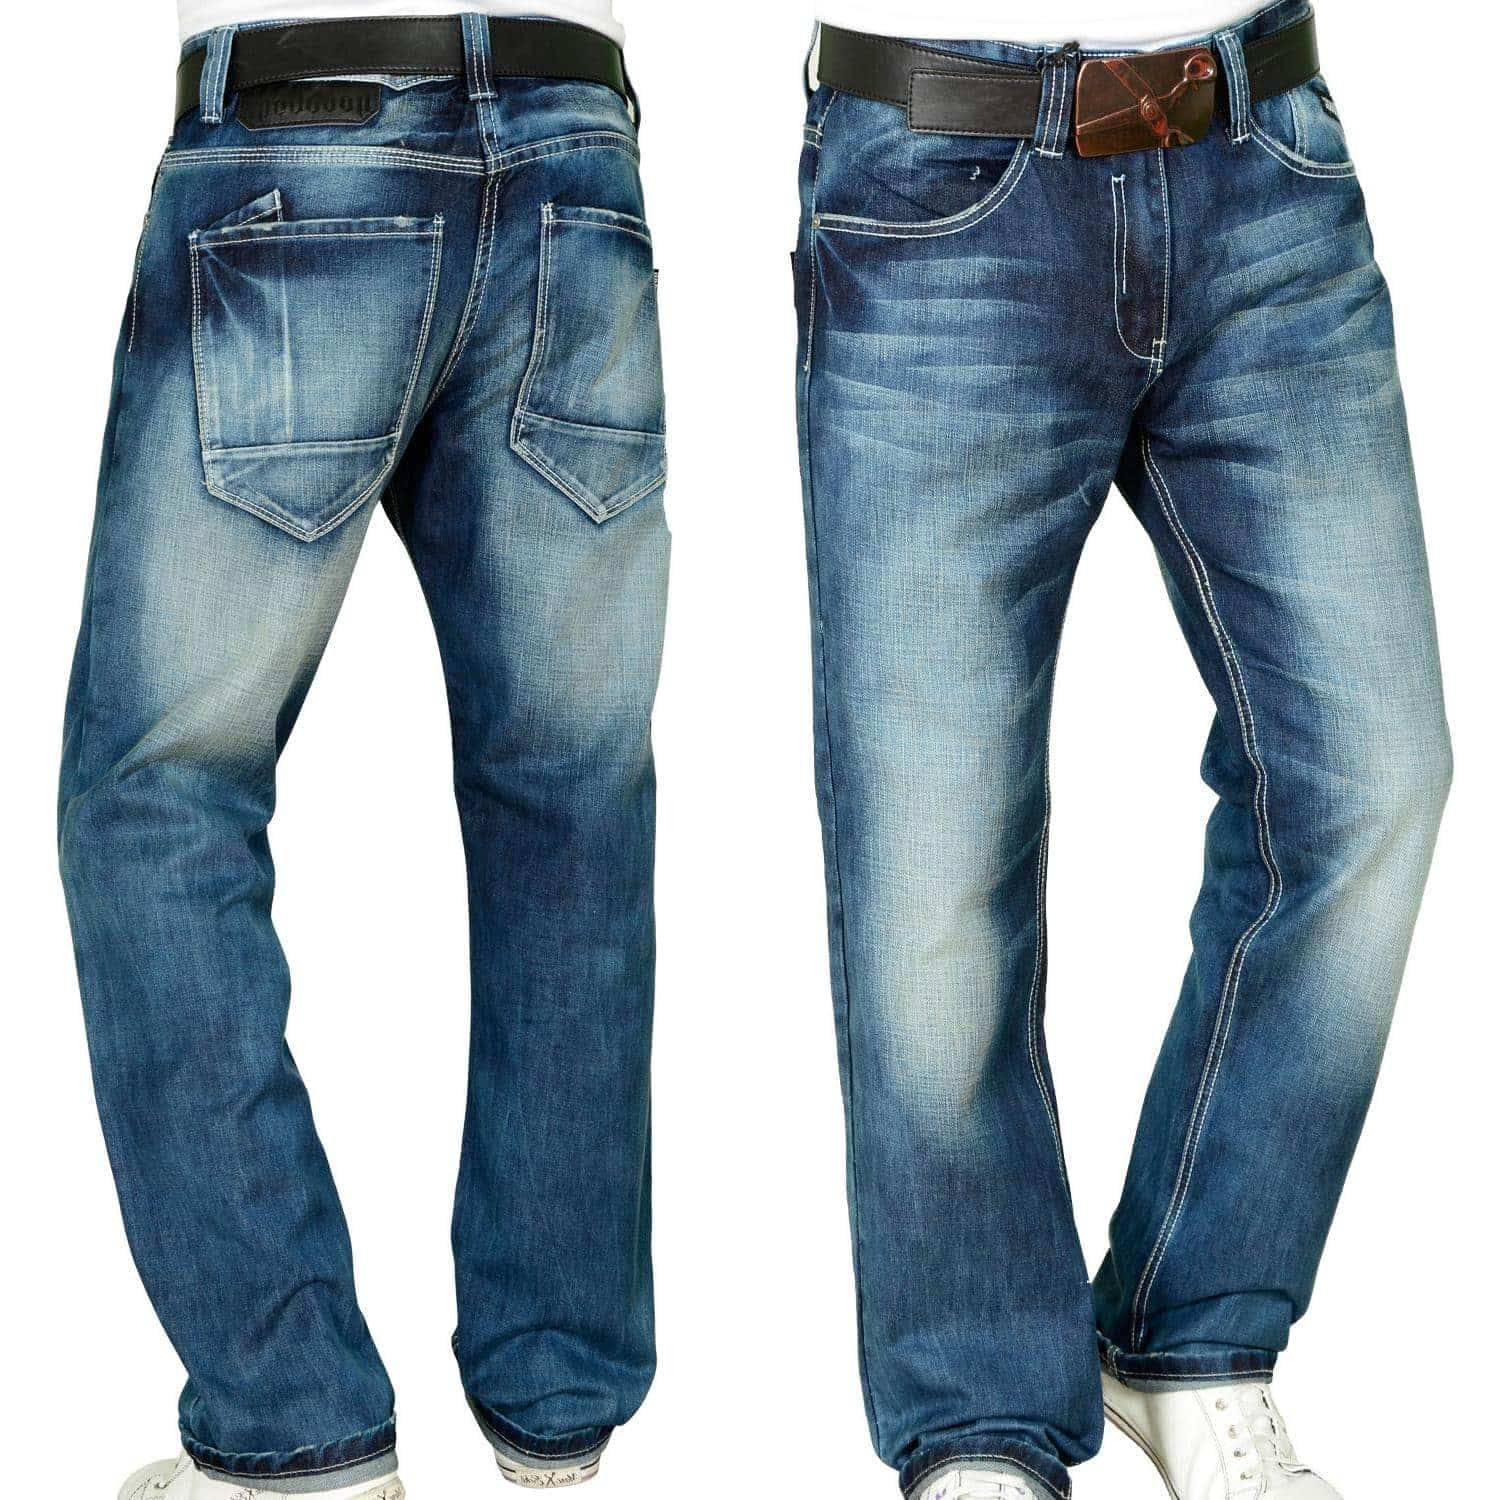 jeans dream meaning, dream about jeans, jeans dream interpretation, seeing in a dream jeans